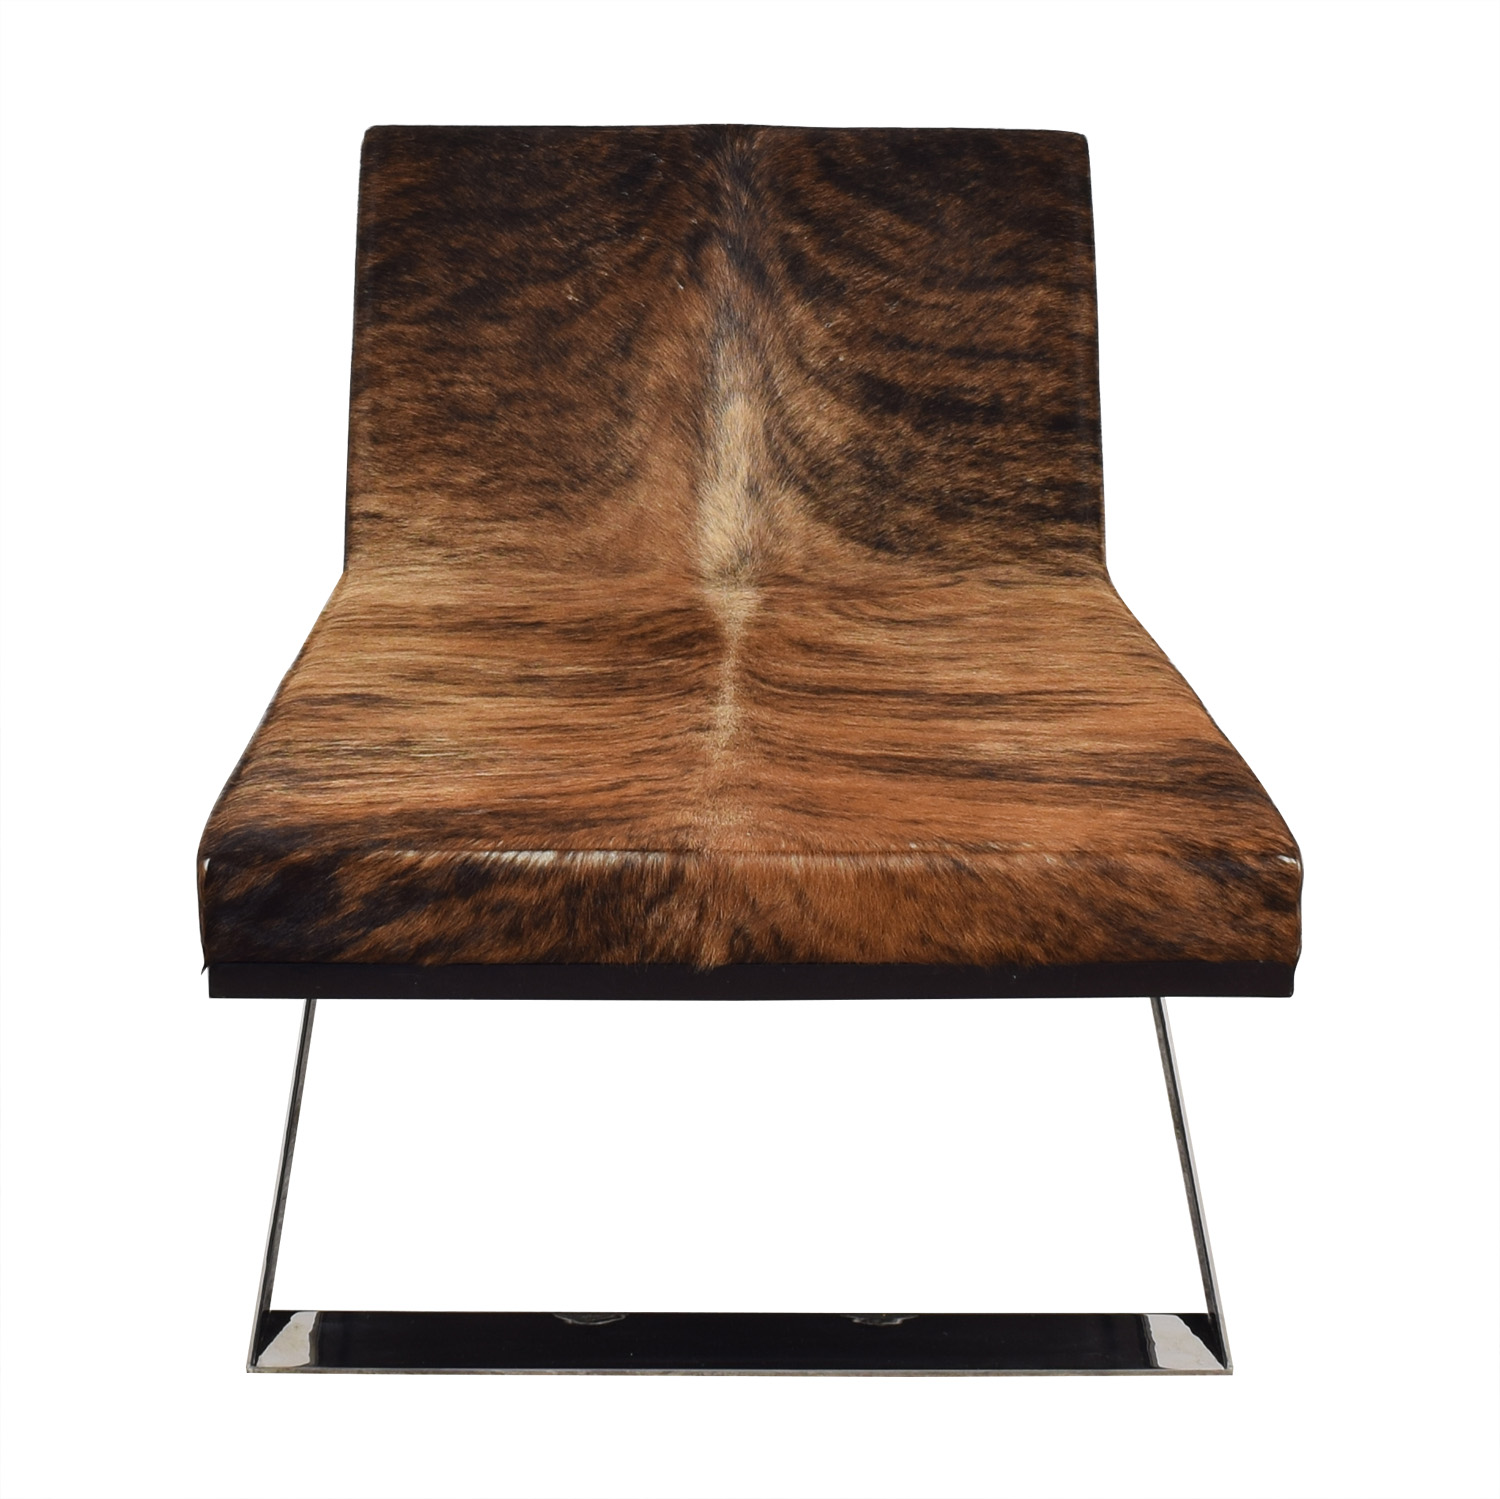 Moura Starr Moura Starr Kalup Chaise Lounge in Araca Cow Hide nyc